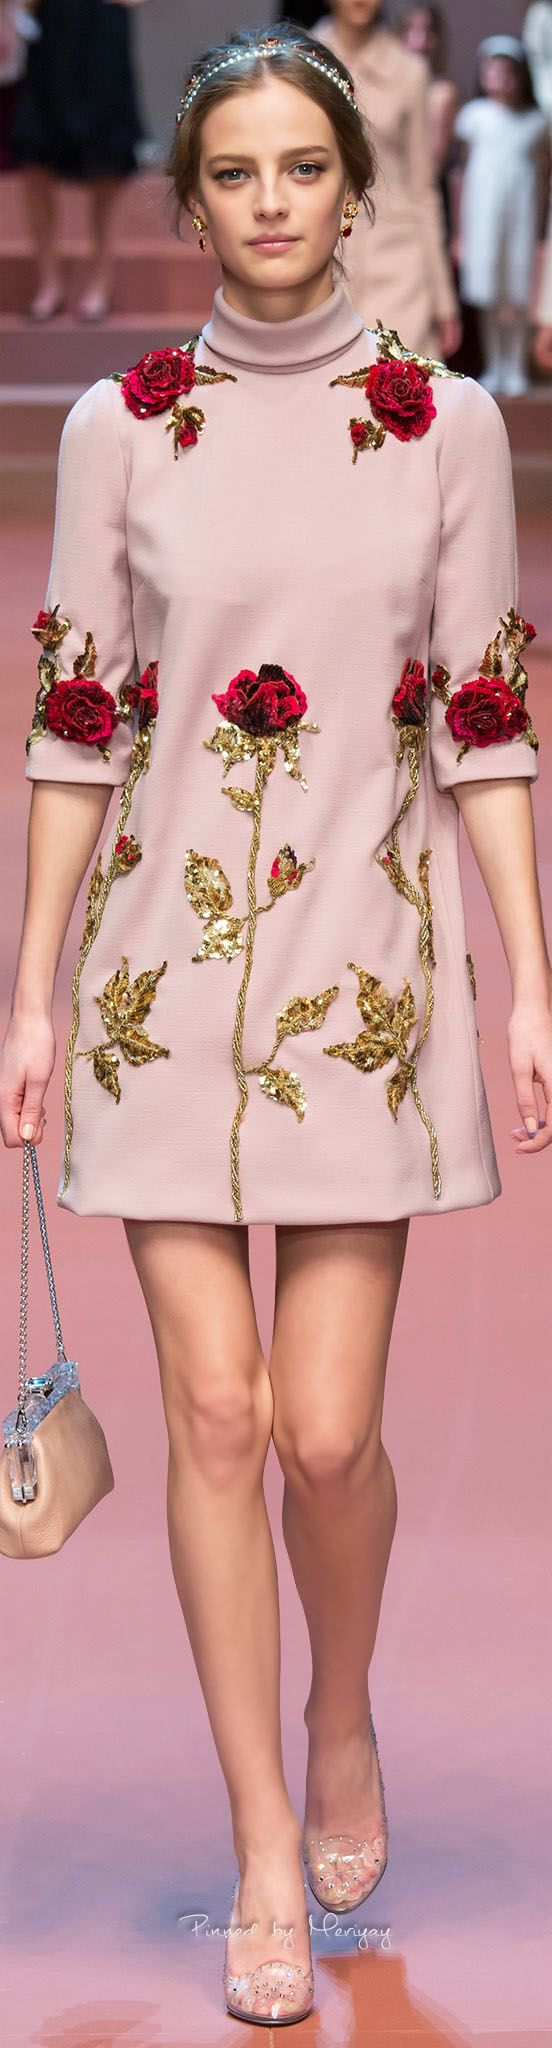 Dolce & Gabbana, Autumn/Winter 2015, Ready to Wear